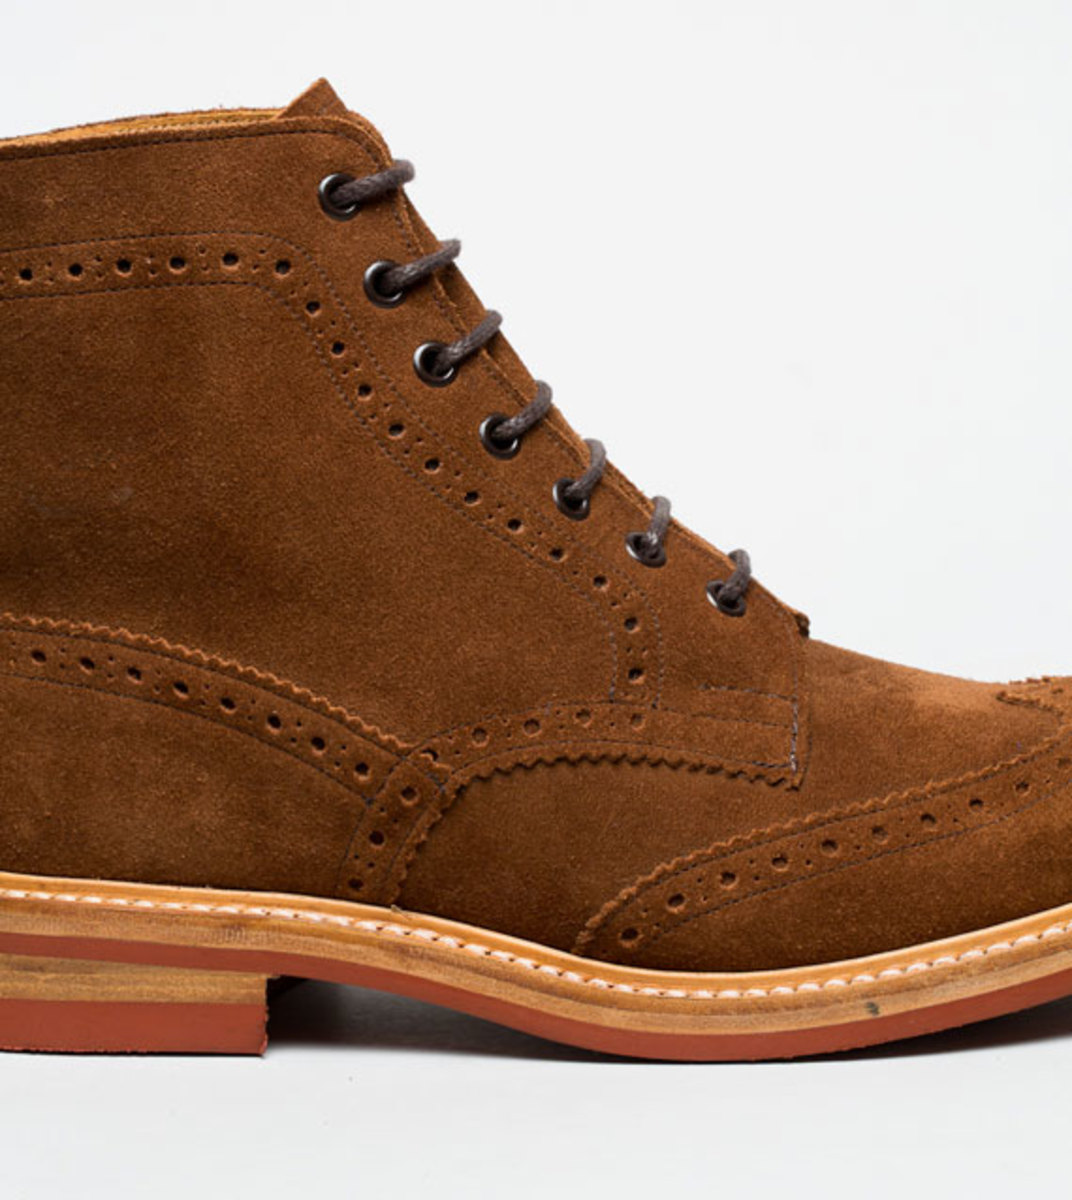 norse-projects-trickers-repello-brogue-boots-06